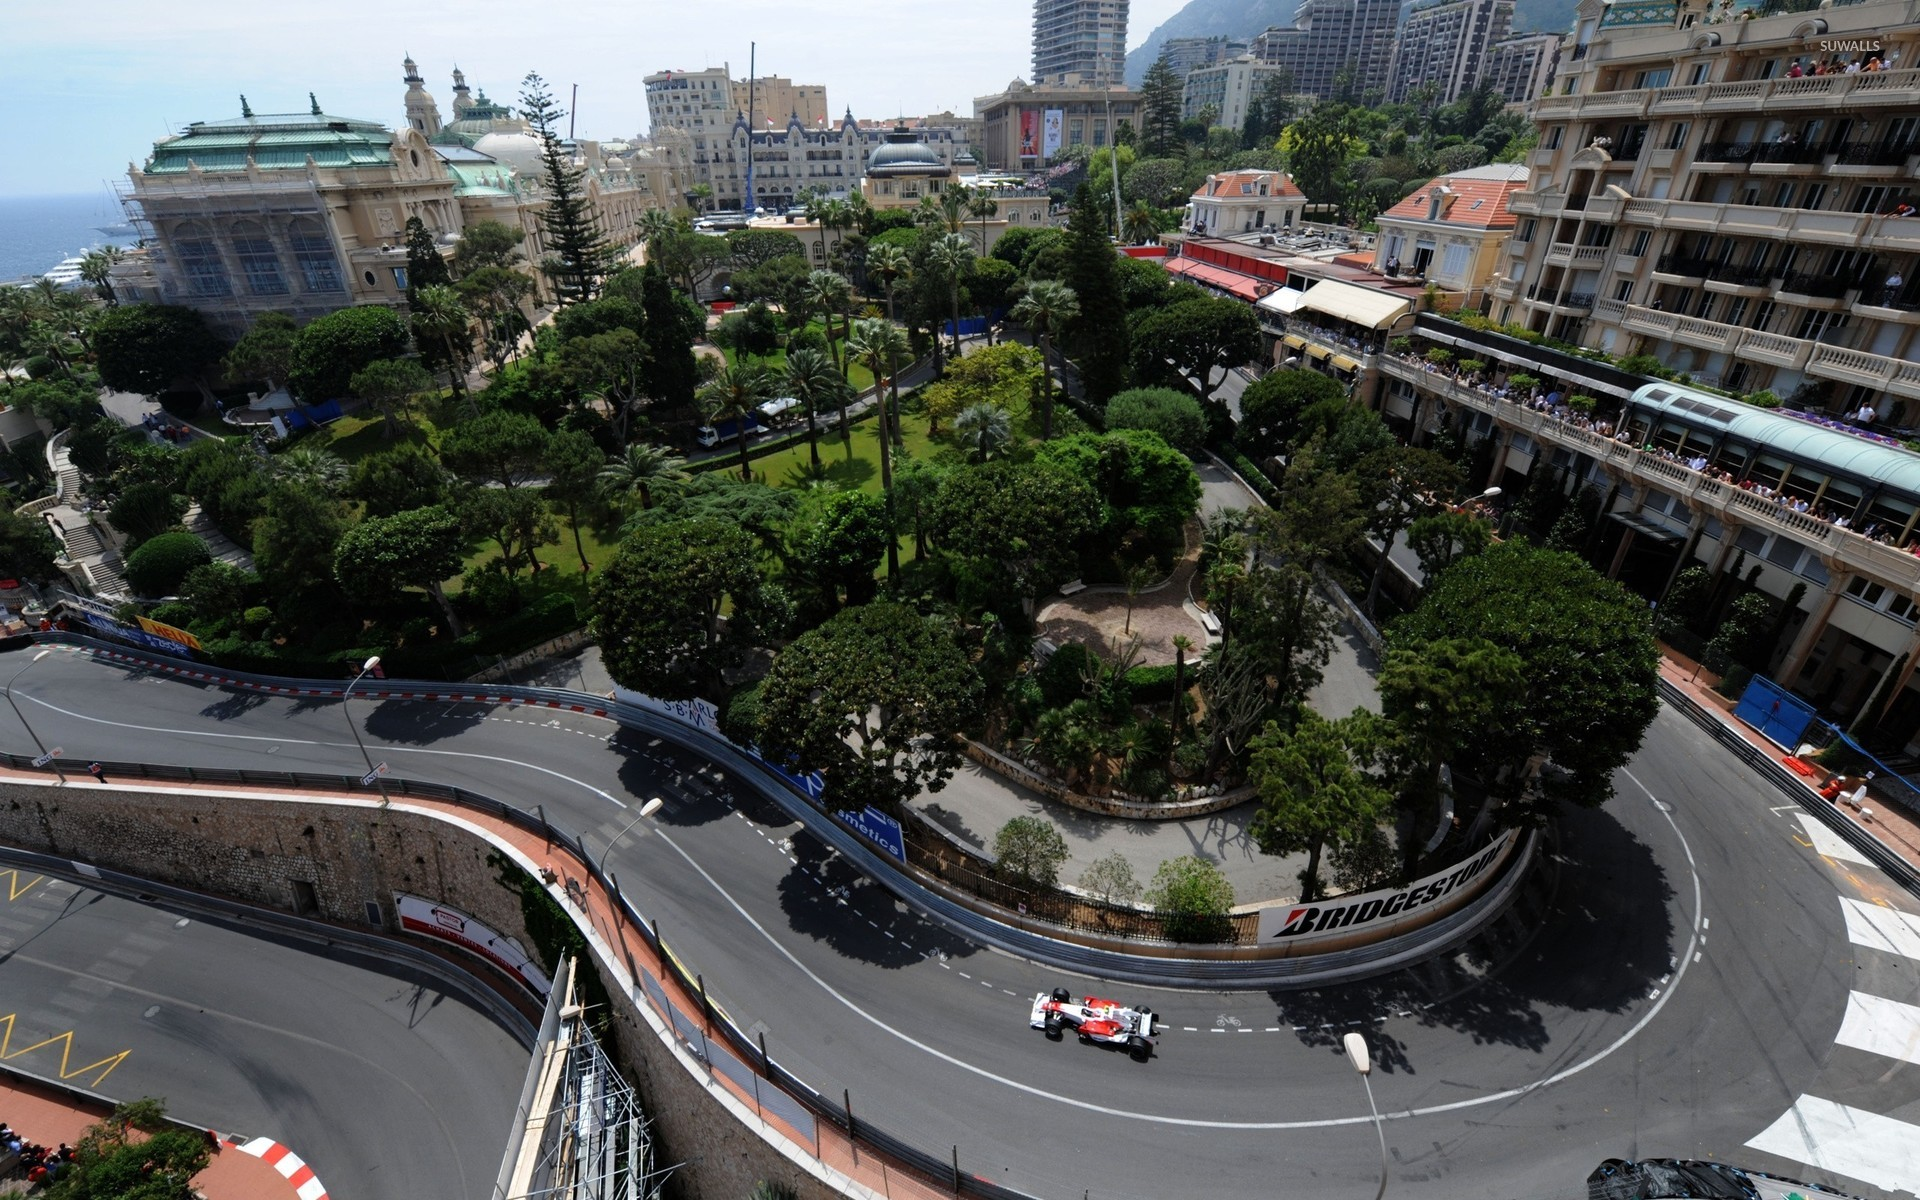 View of the grand prix of Monaco from private balcony